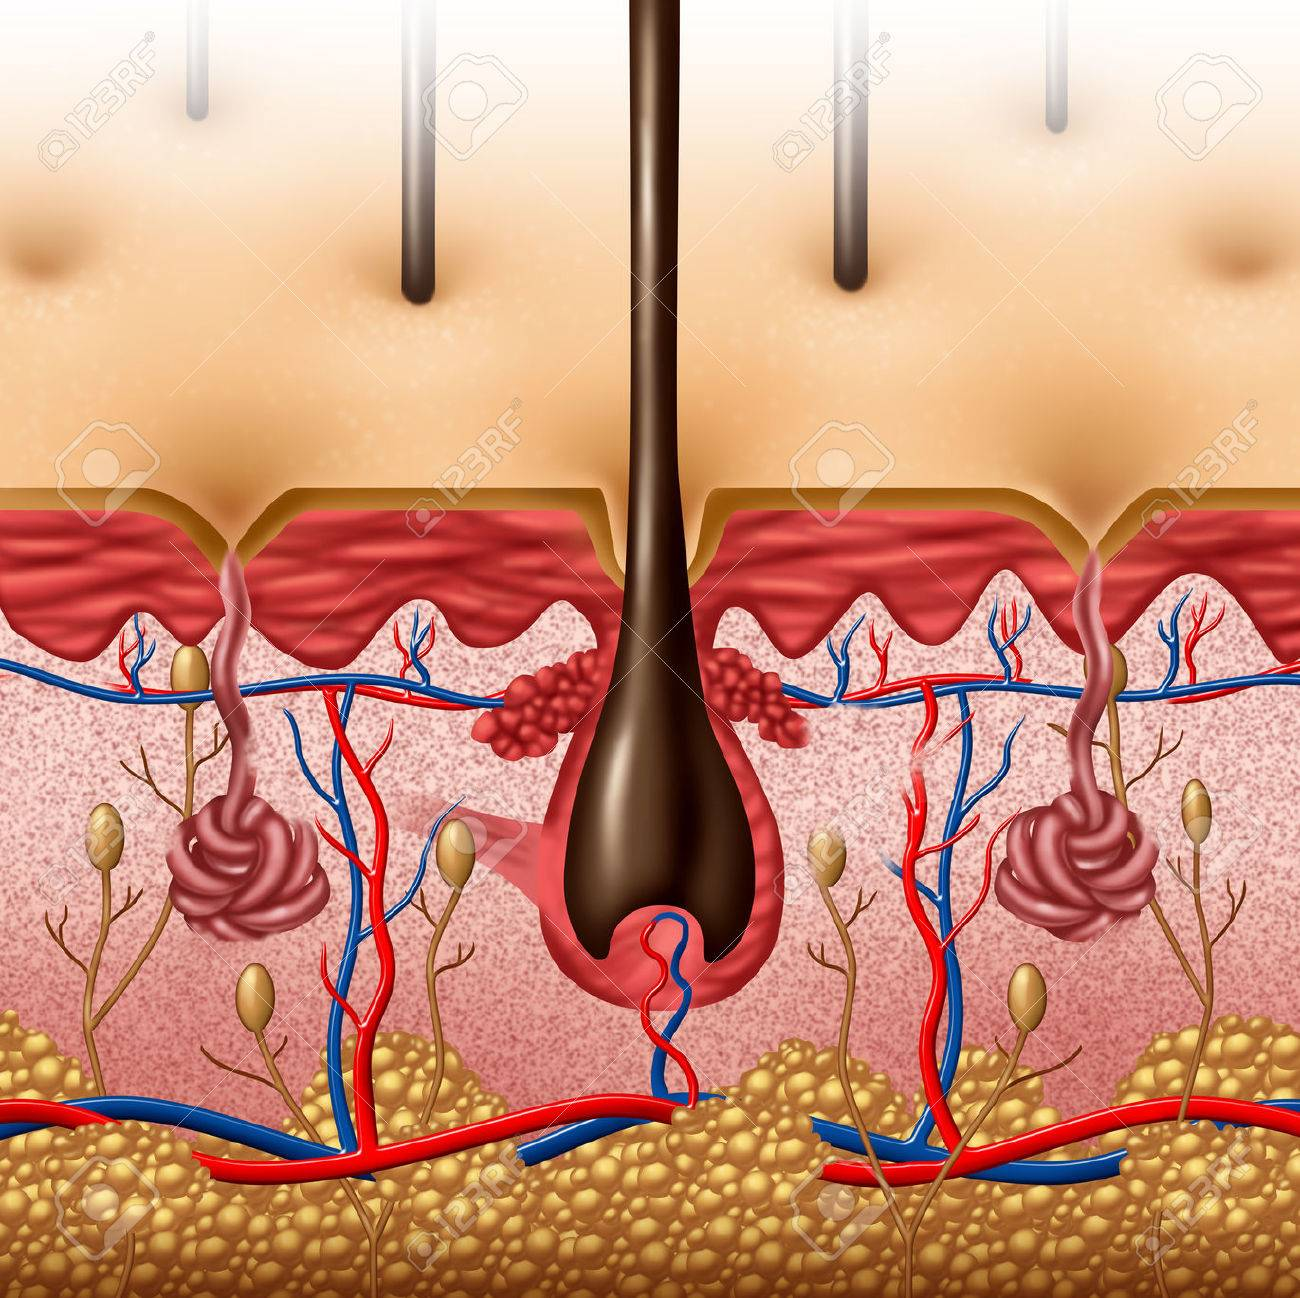 skin cross section diagram deer cuts anatomy concept with a of the human body surface organ hair